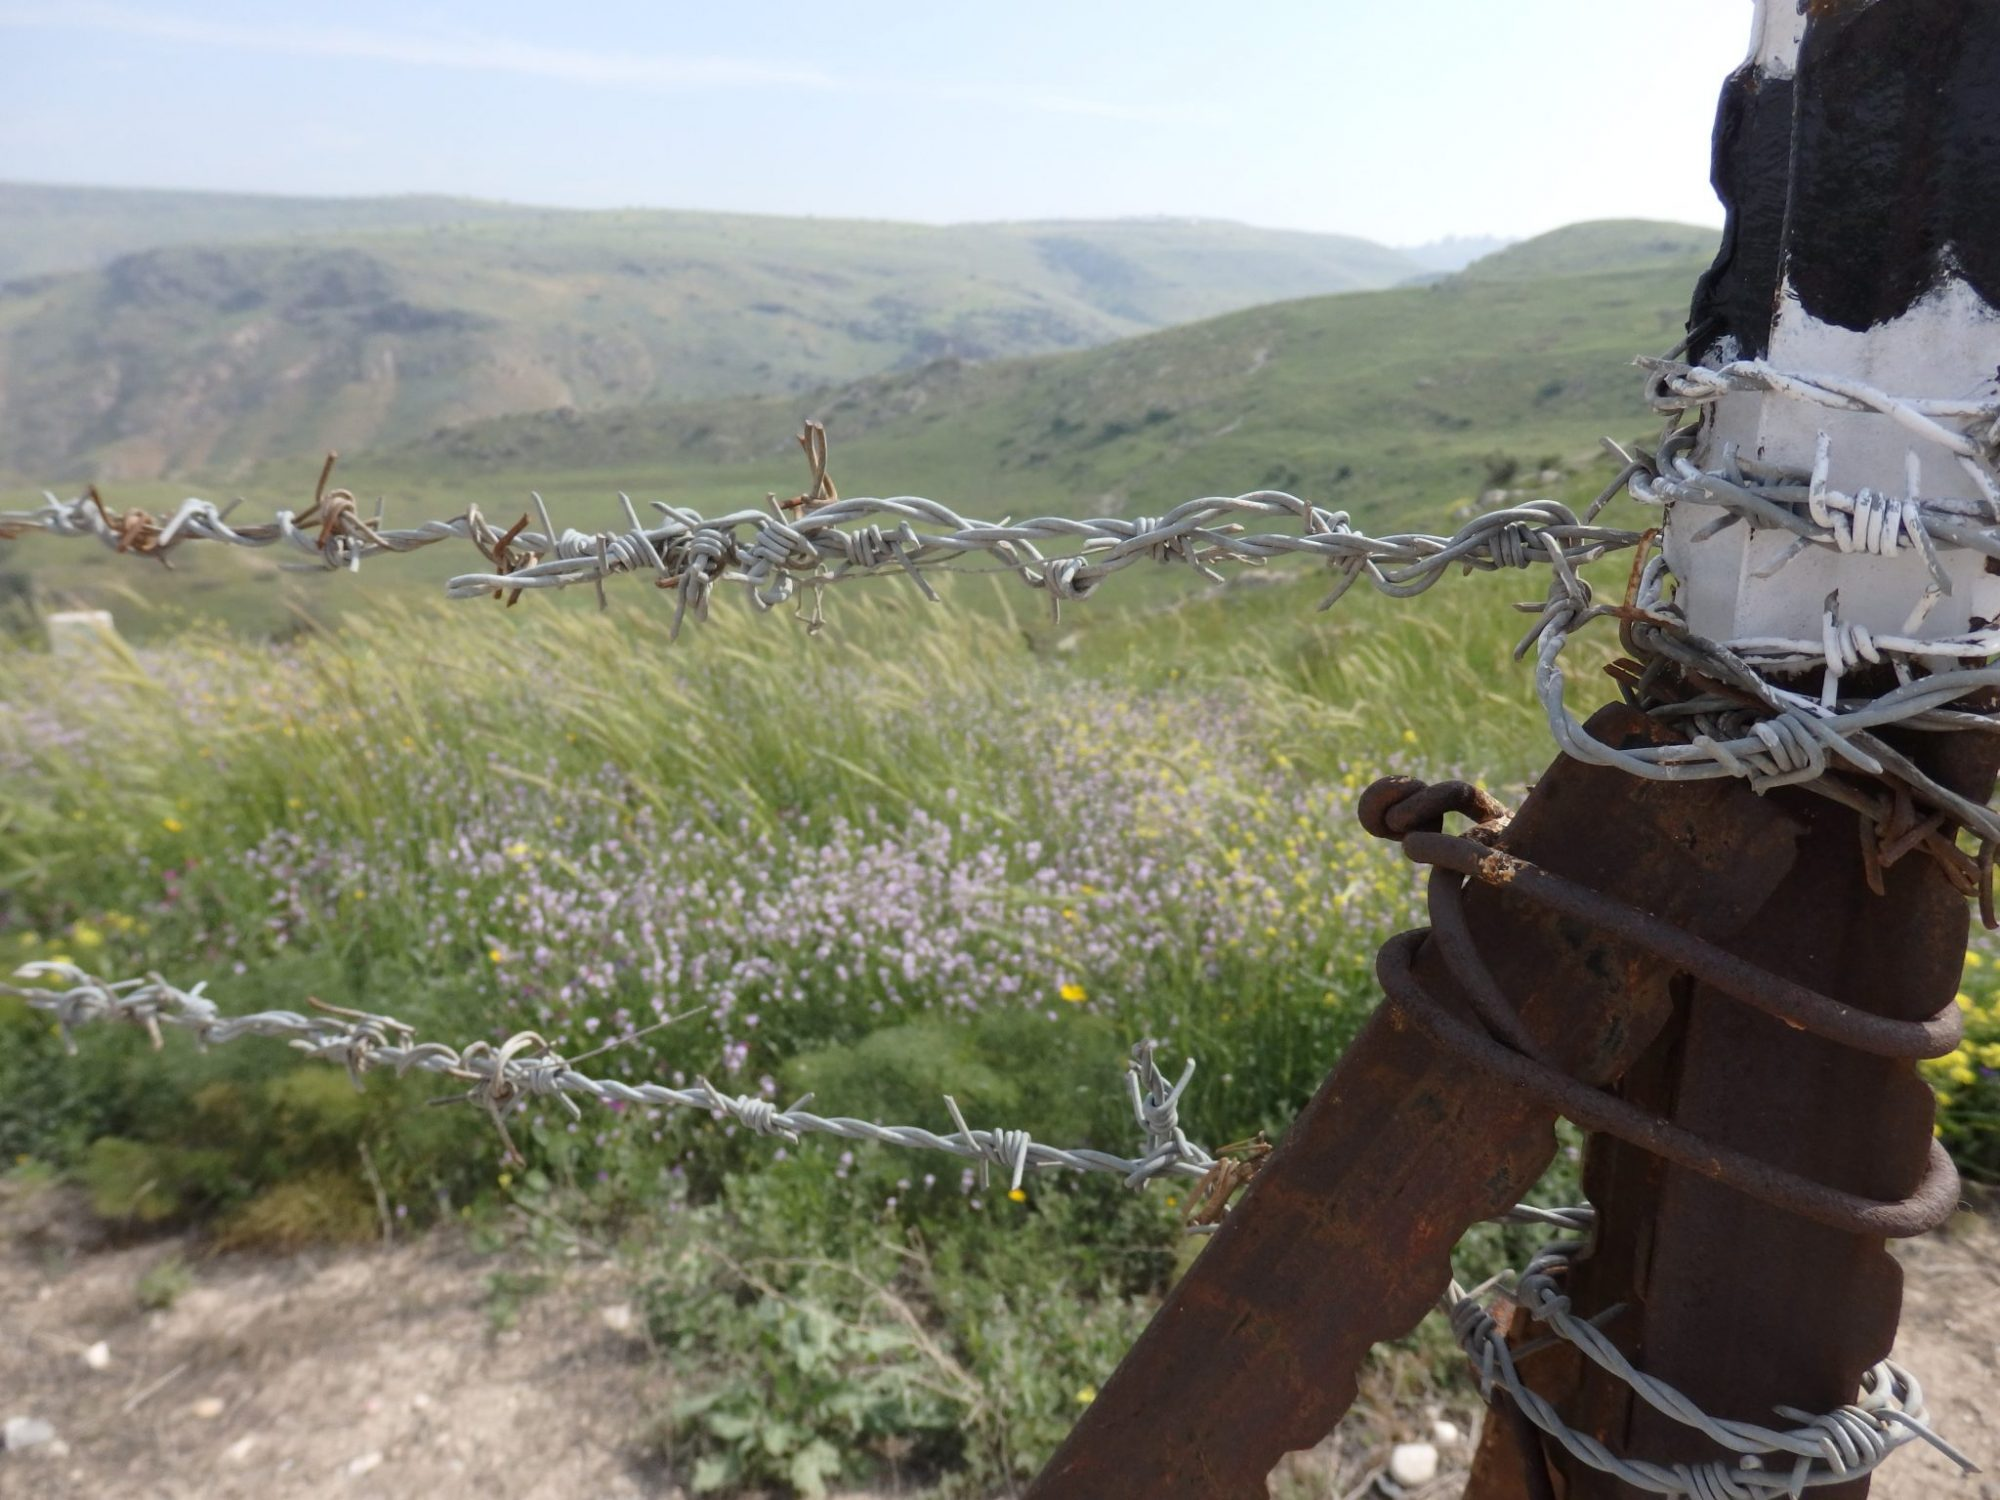 Barbed wire, wildflowers and big views on the way up to Susita National Park, Israel.